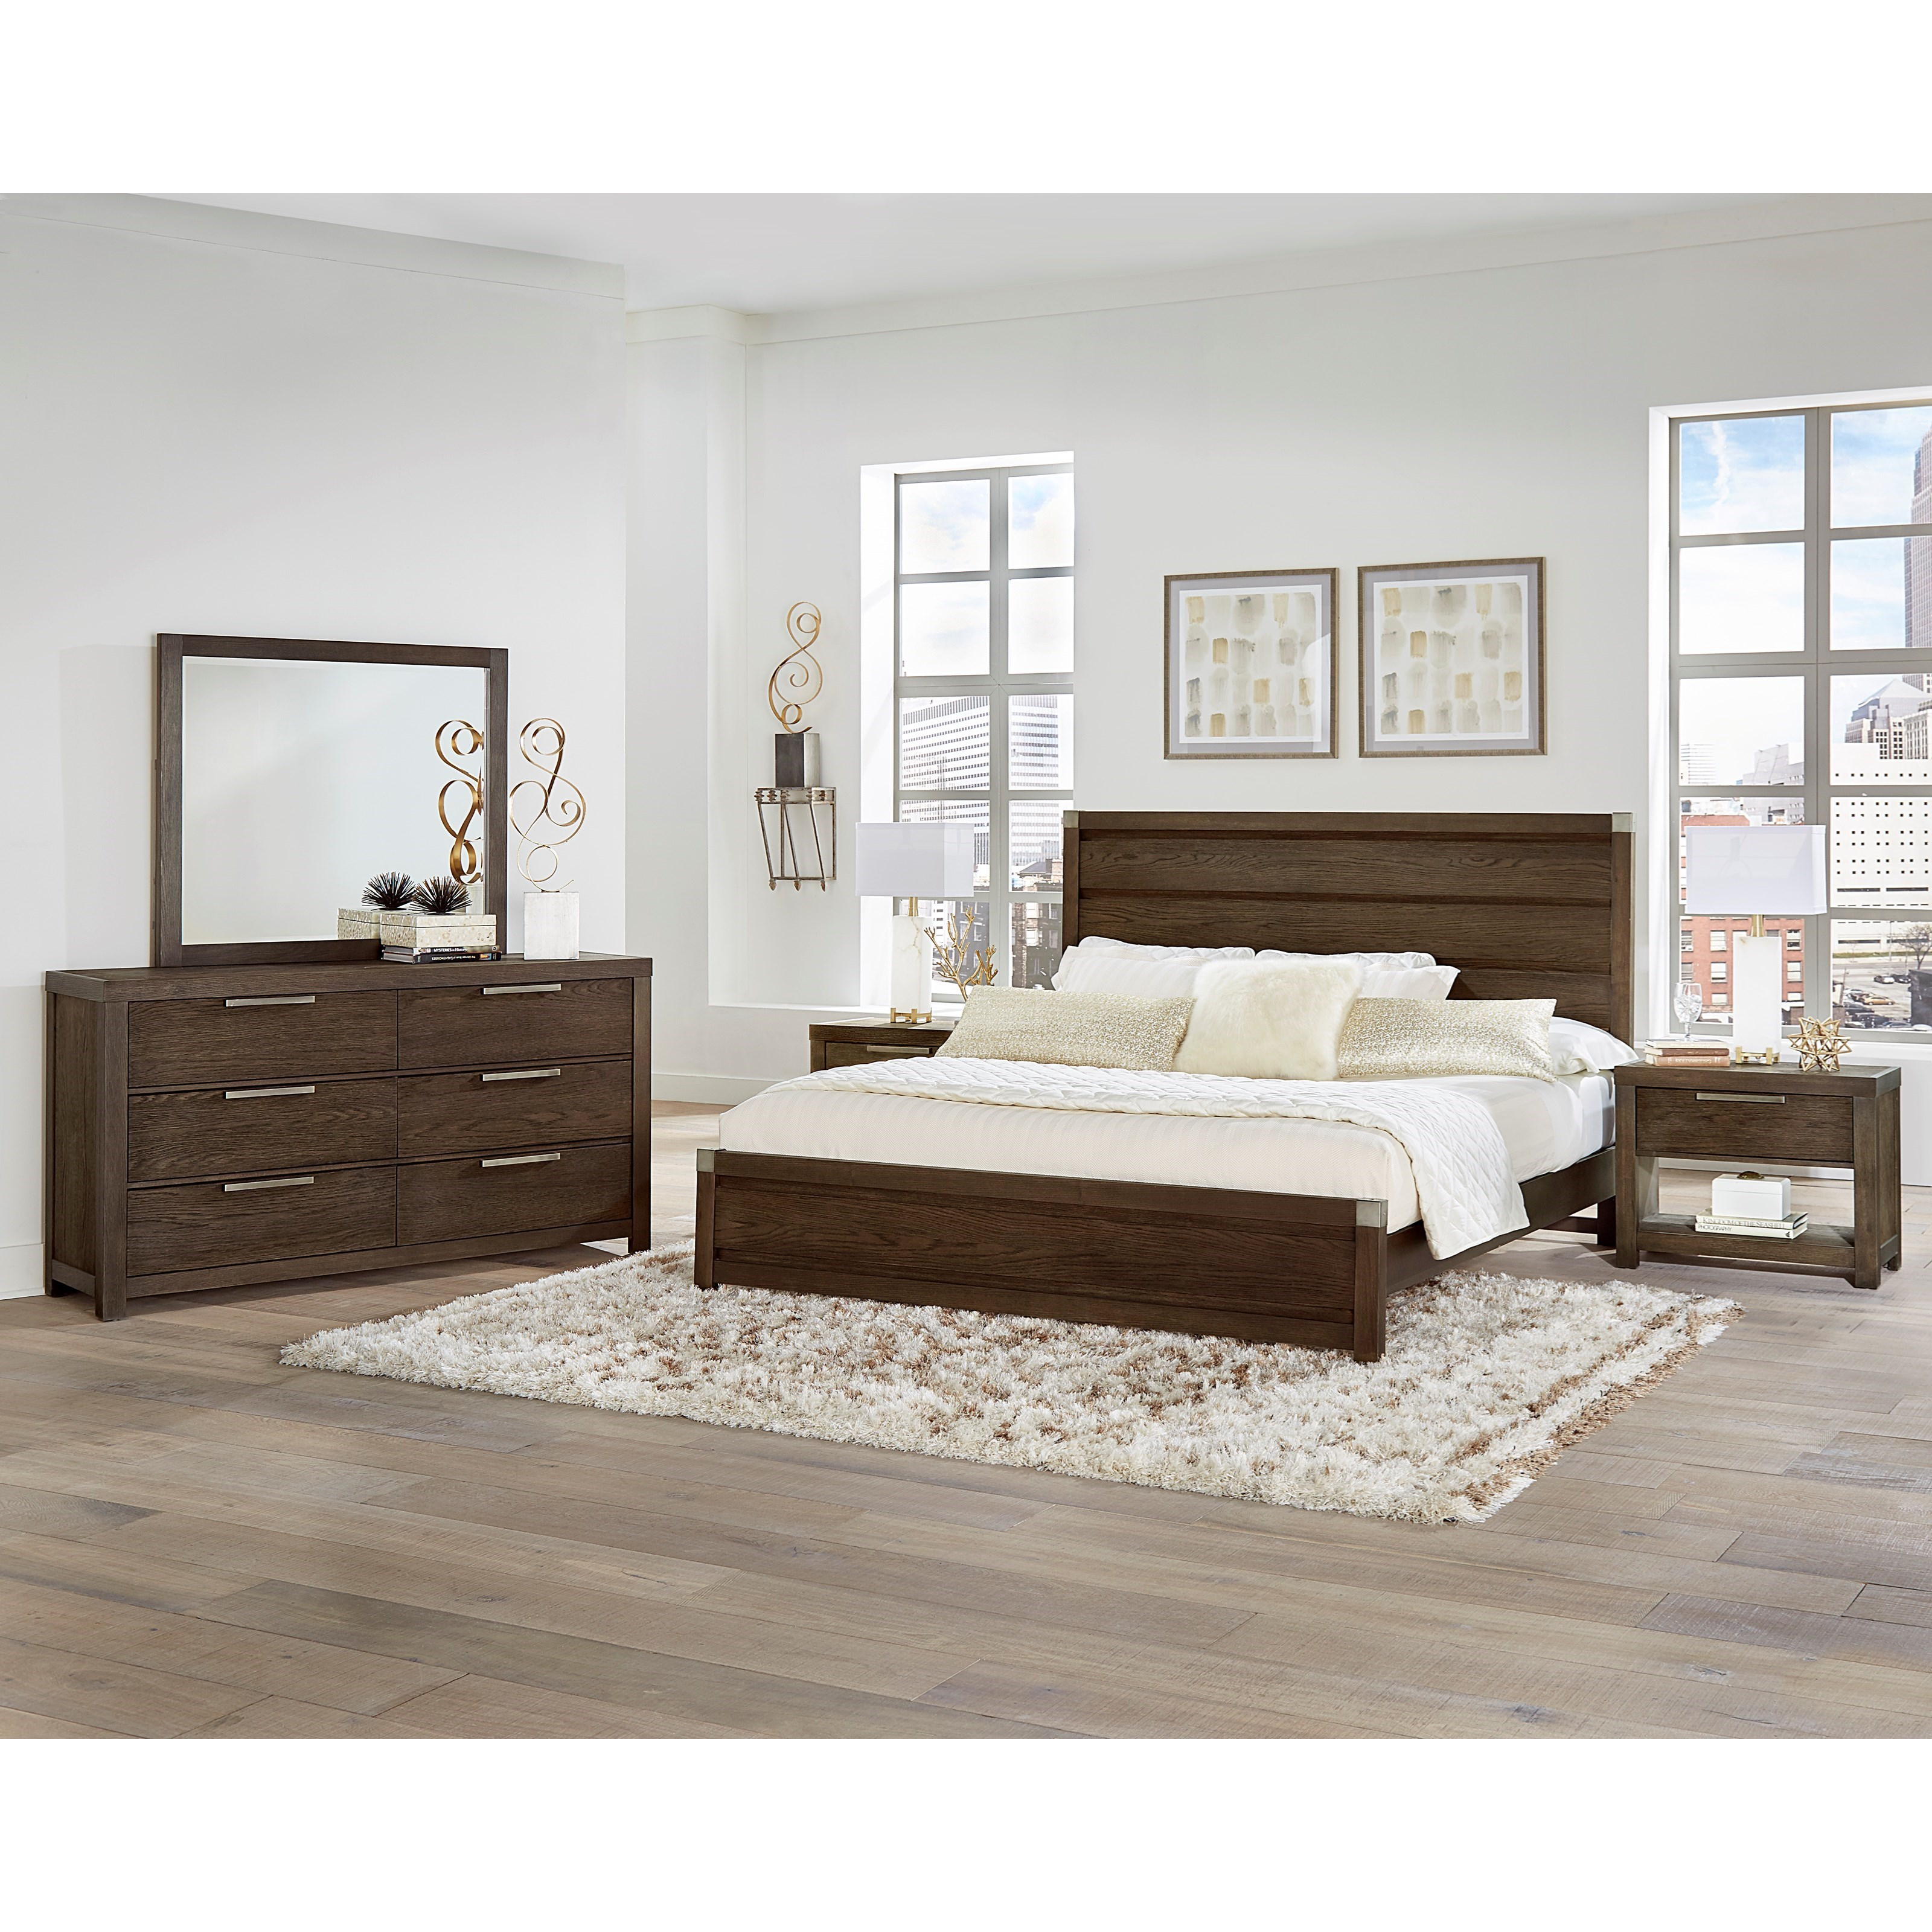 Vaughan Bassett American Modern Queen Bedroom Group - Item Number: 650 Q Bedroom Group 2